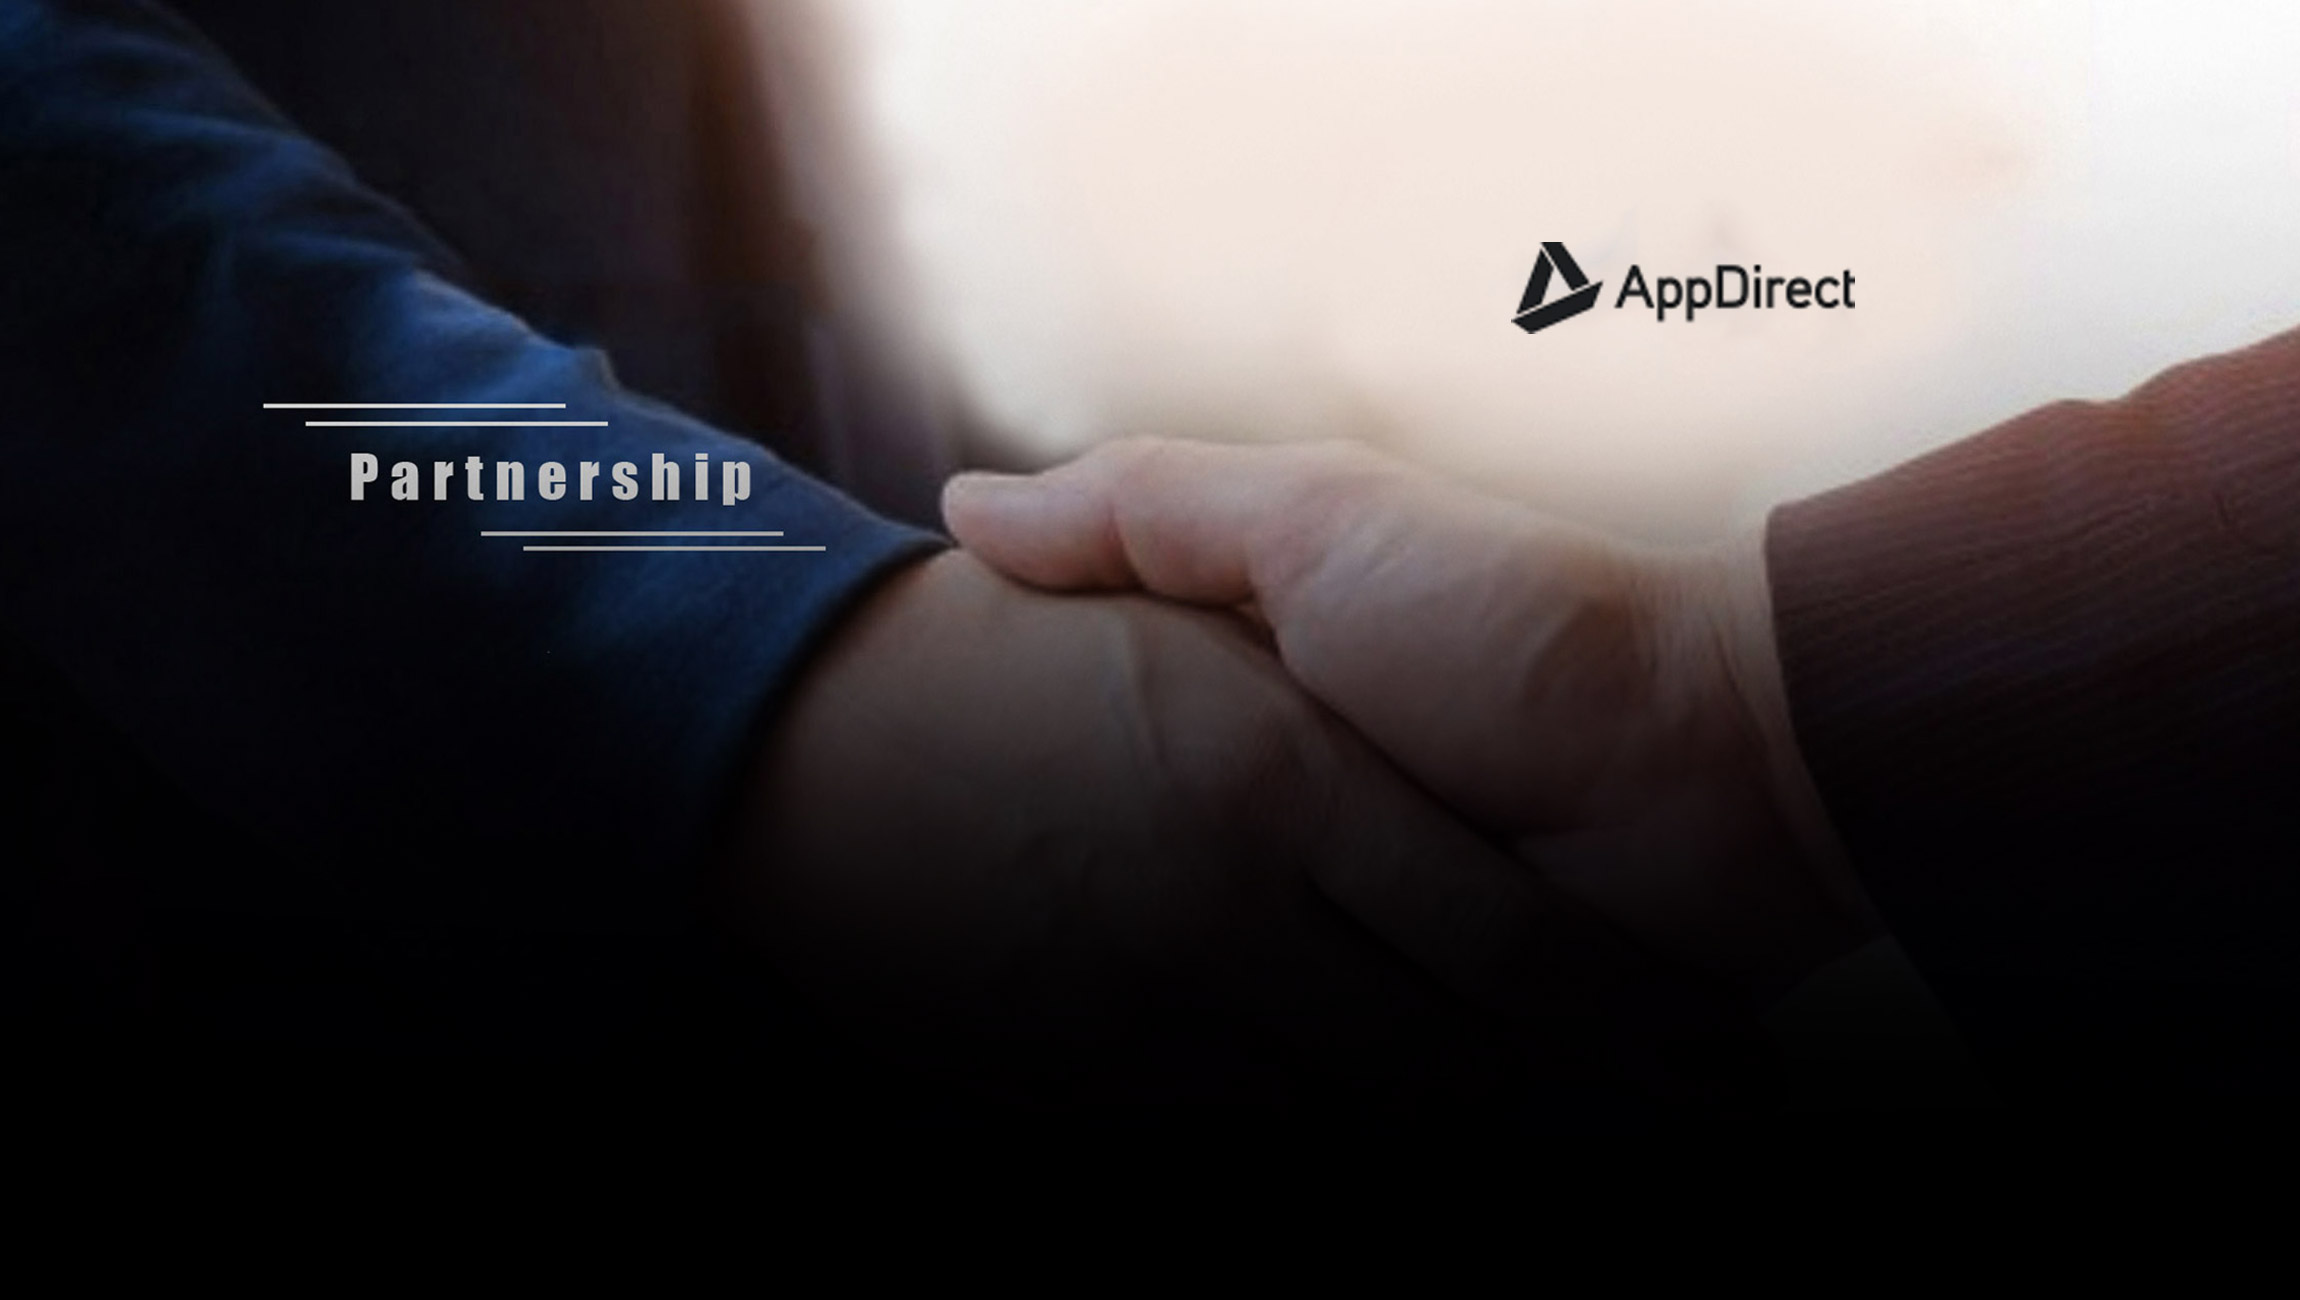 AppDirect Partners With Adobe to Offer Market-Leading Products, Automate and Streamline VIP Marketplace